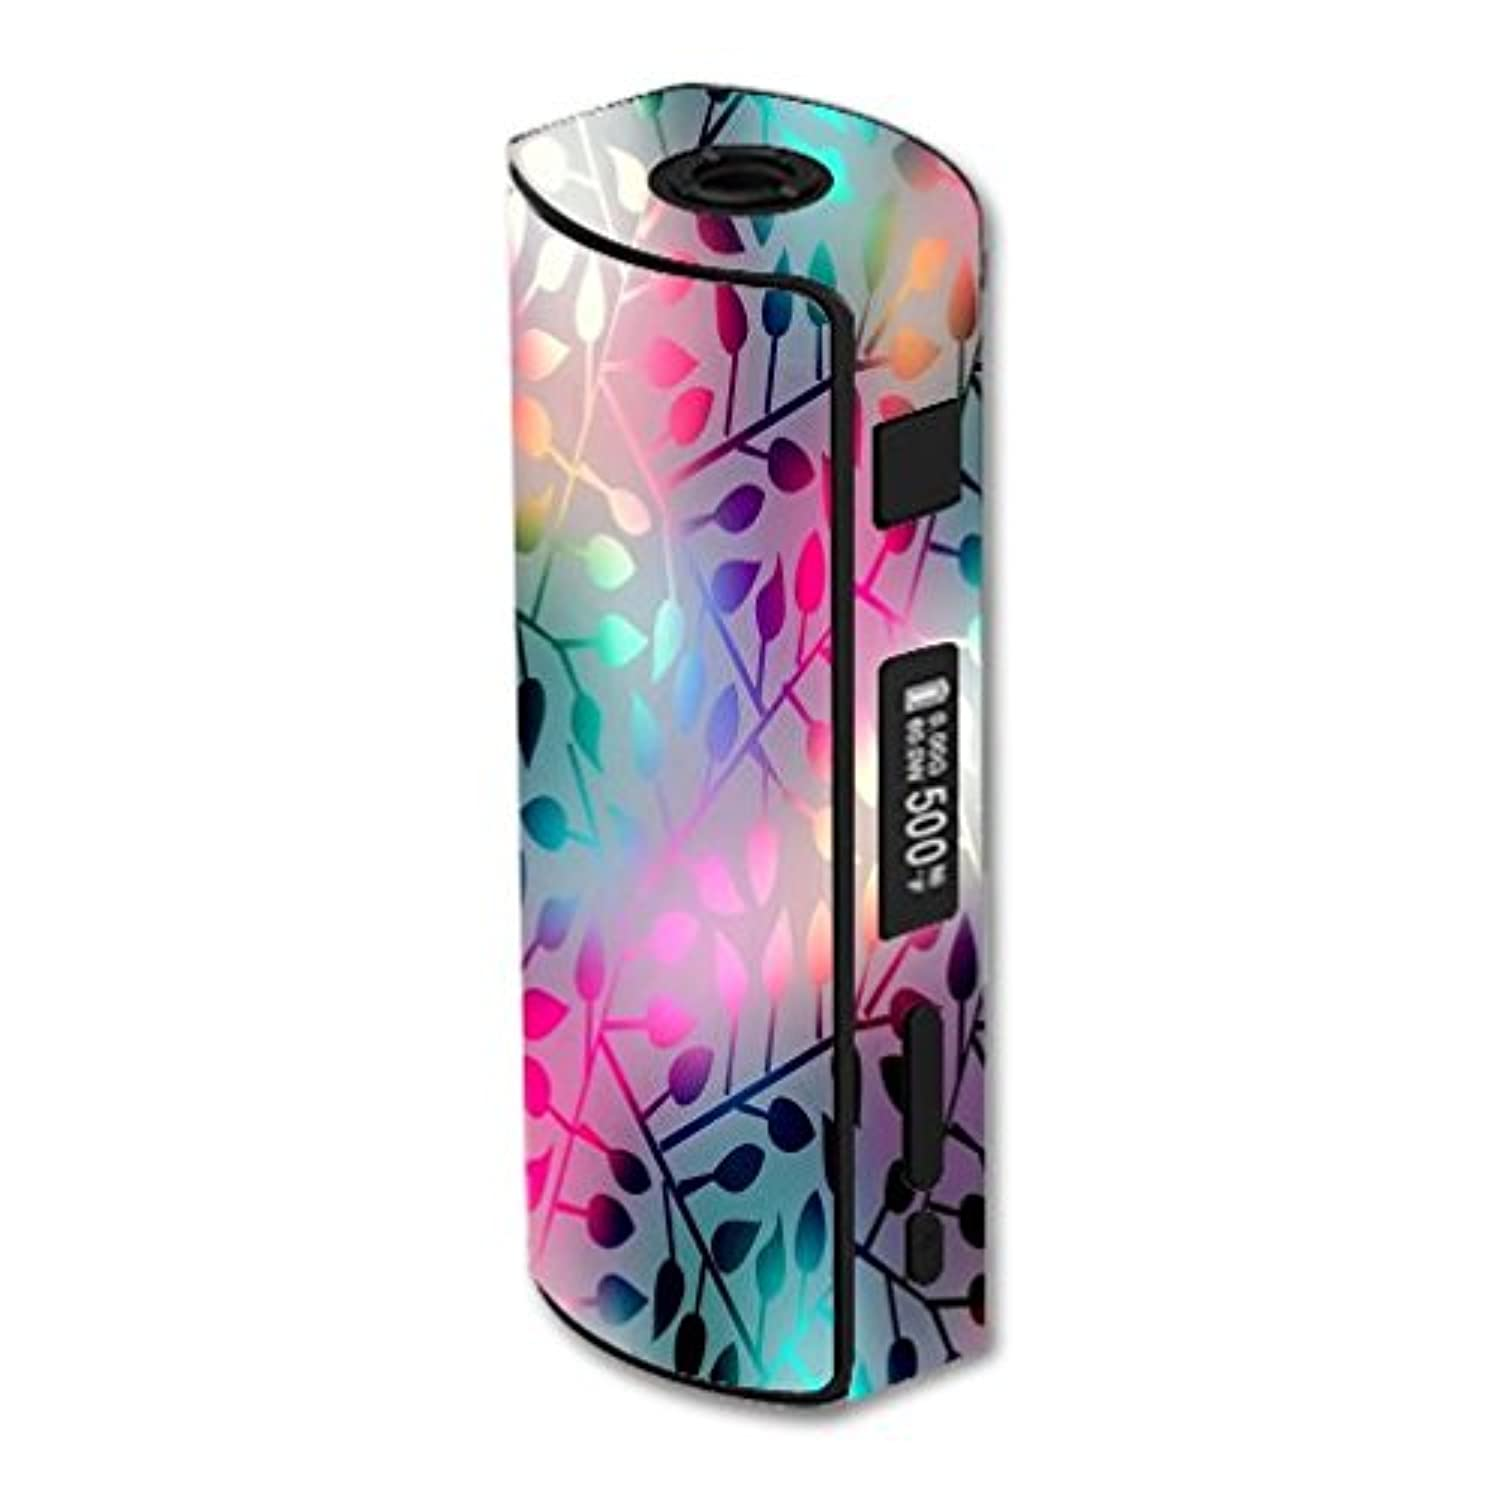 Eleaf iStick 60W TC Vape E-Cig Mod Box Vinyl DECAL STICKER Skin Wrap / > > > Decal Sticker < < < Neon Colorful Leaves Design Print Image